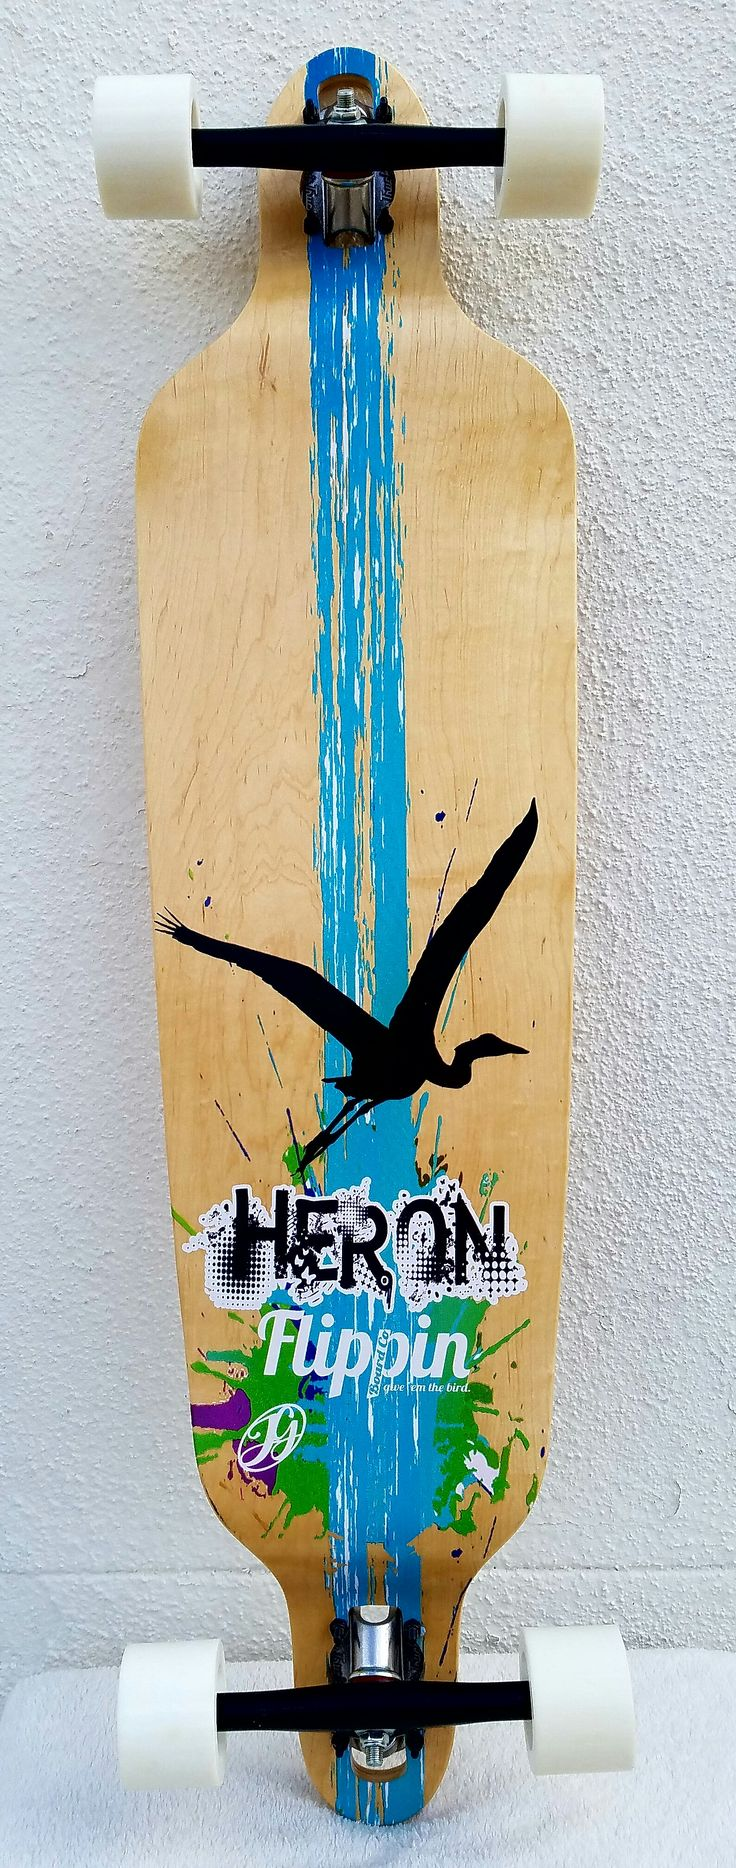 Bottom Graphic  View of our Hot Selling Flippin Board Co Bamboo Drop Down Drop Through Longboard! Paris Trucks, Punked Wheels, Reds Bearings, And A Sweet Design By Local Florida Artist Gillian Hatcher  . #longboarding #longboards